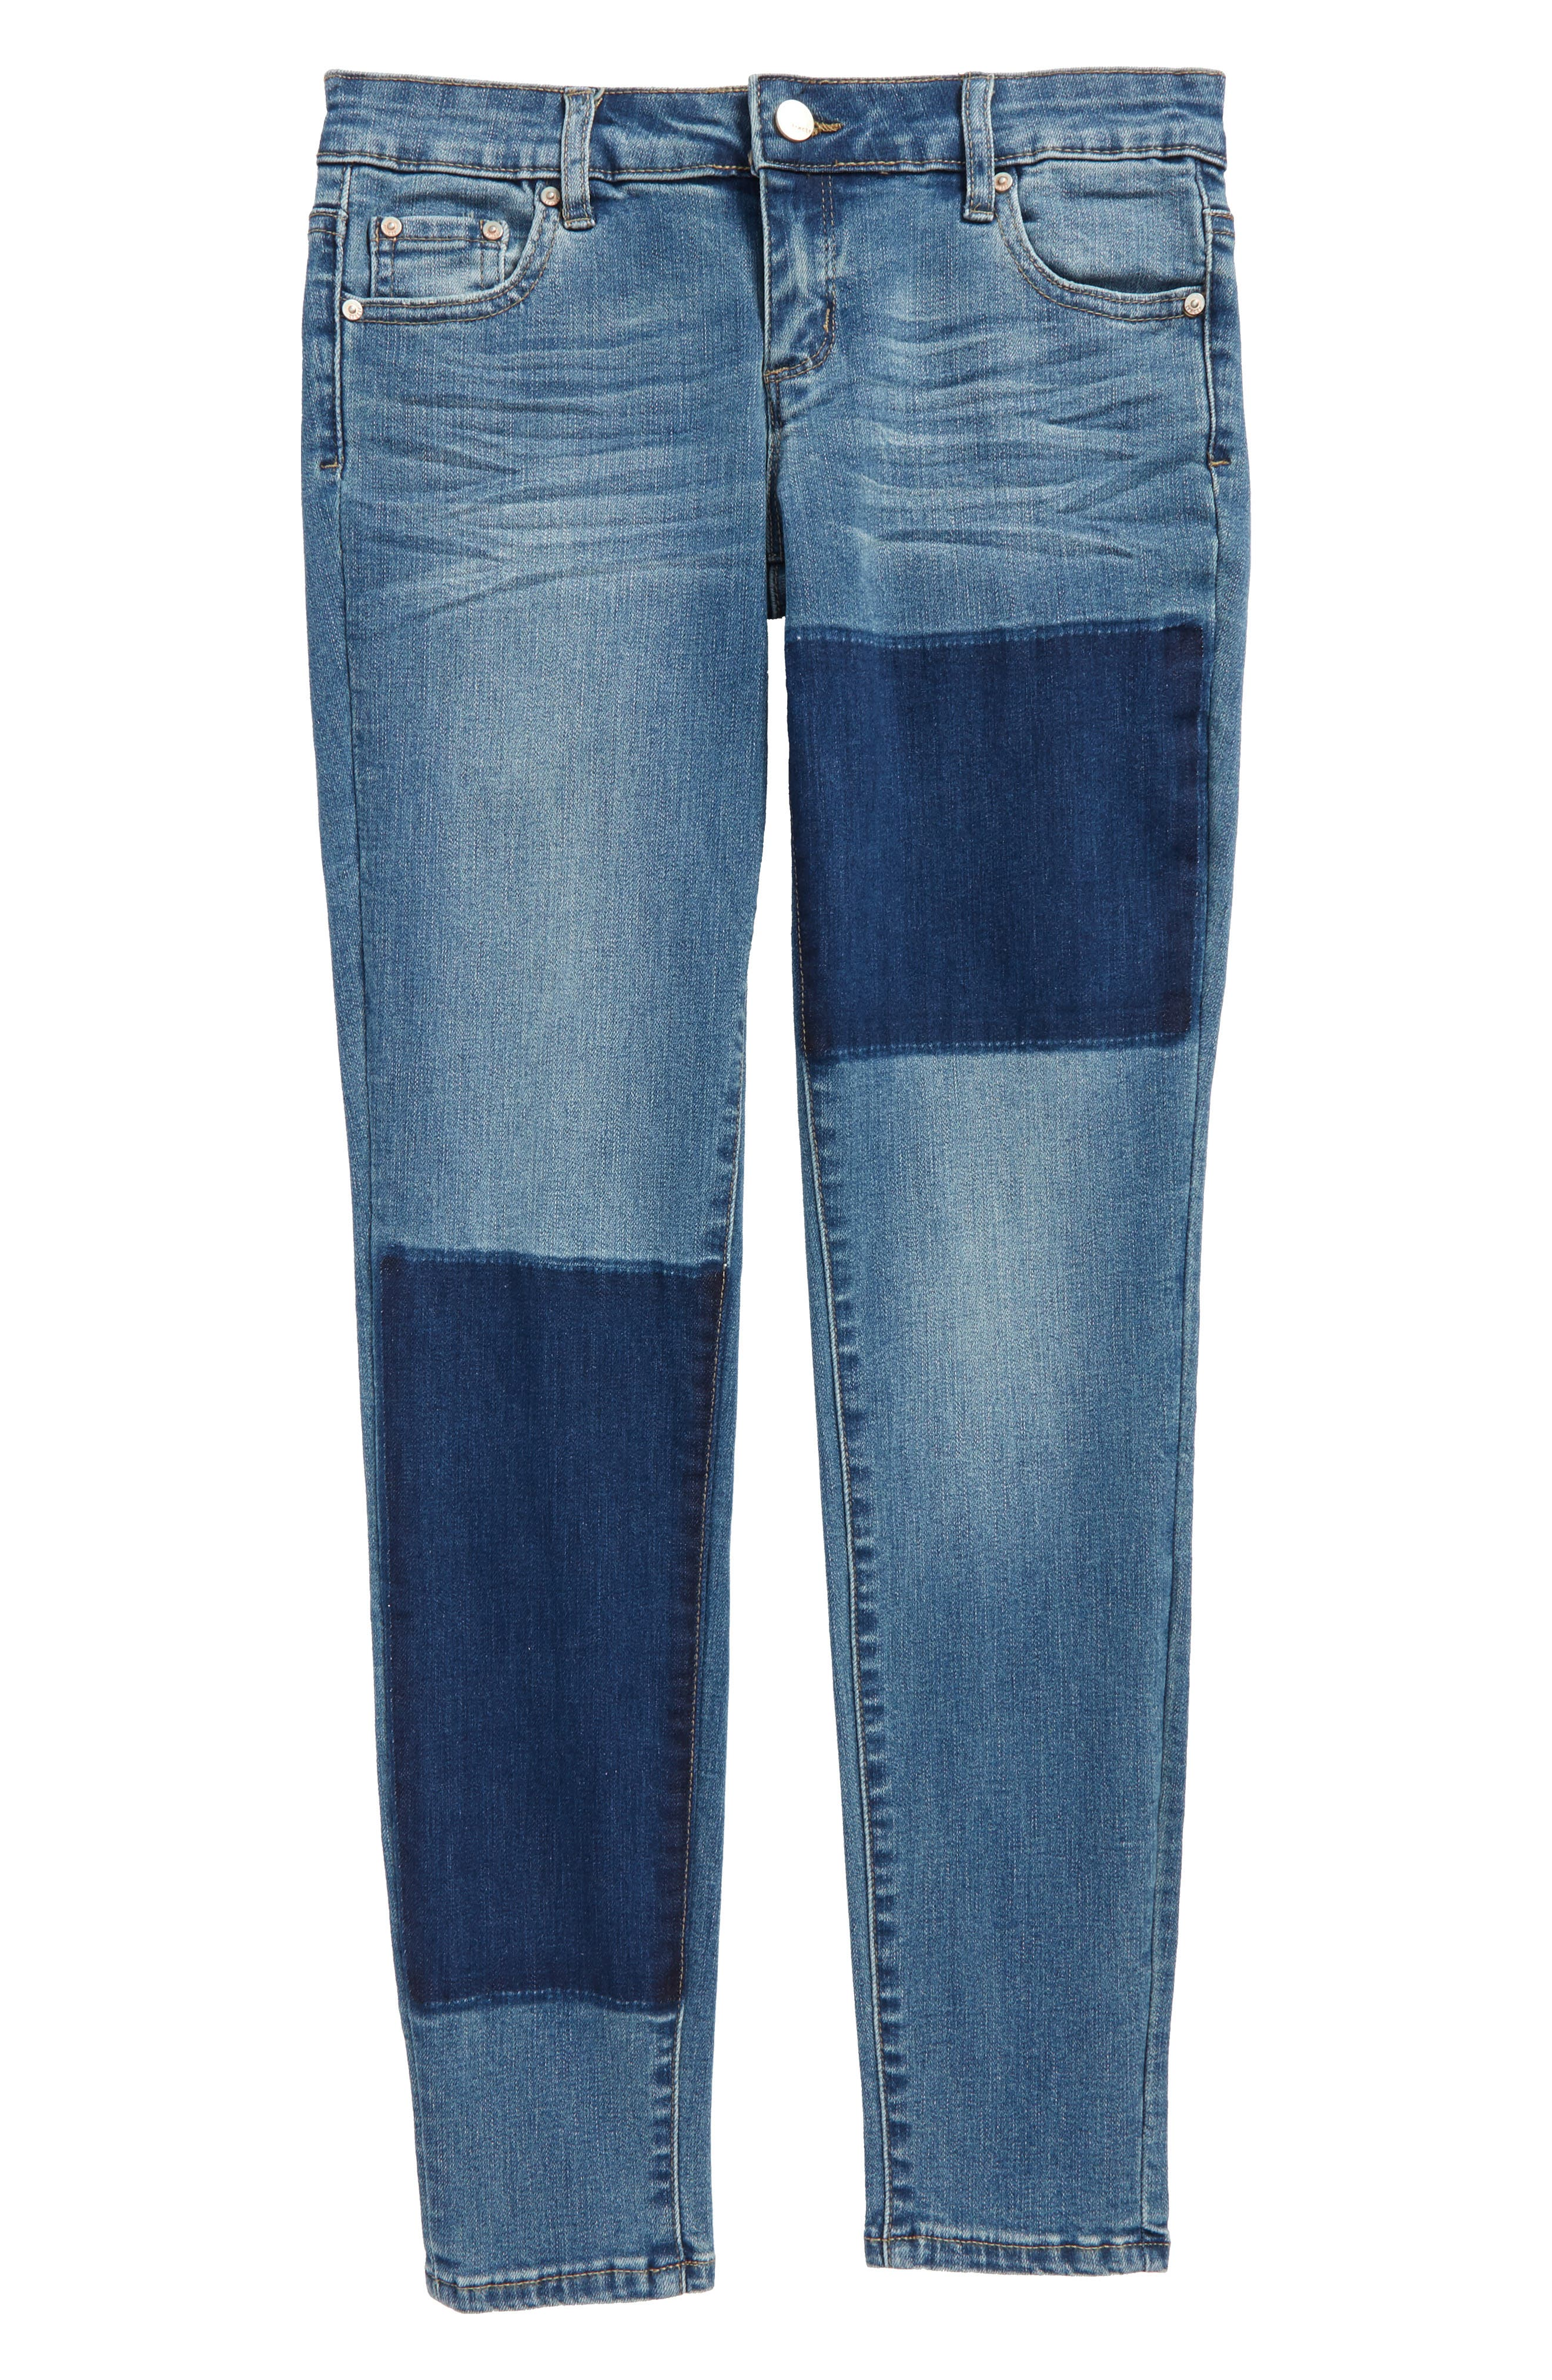 Patch Ankle Skinny Jeans,                             Main thumbnail 1, color,                             407